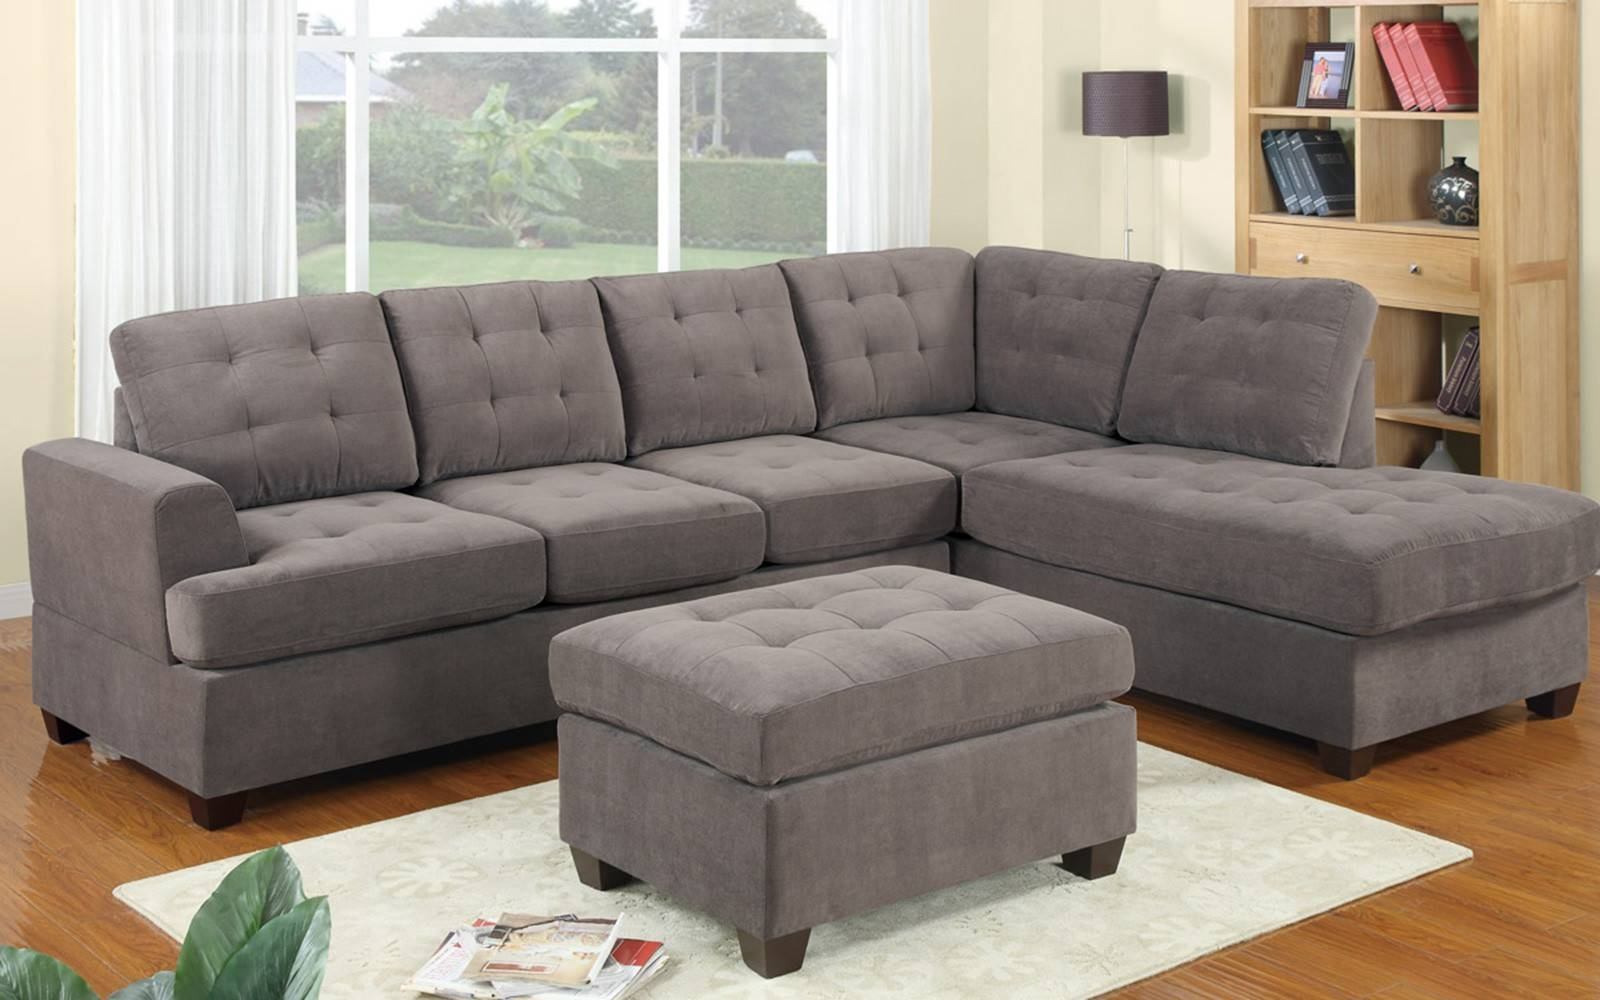 Made In America Sectional Sofa wwwenergywardennet